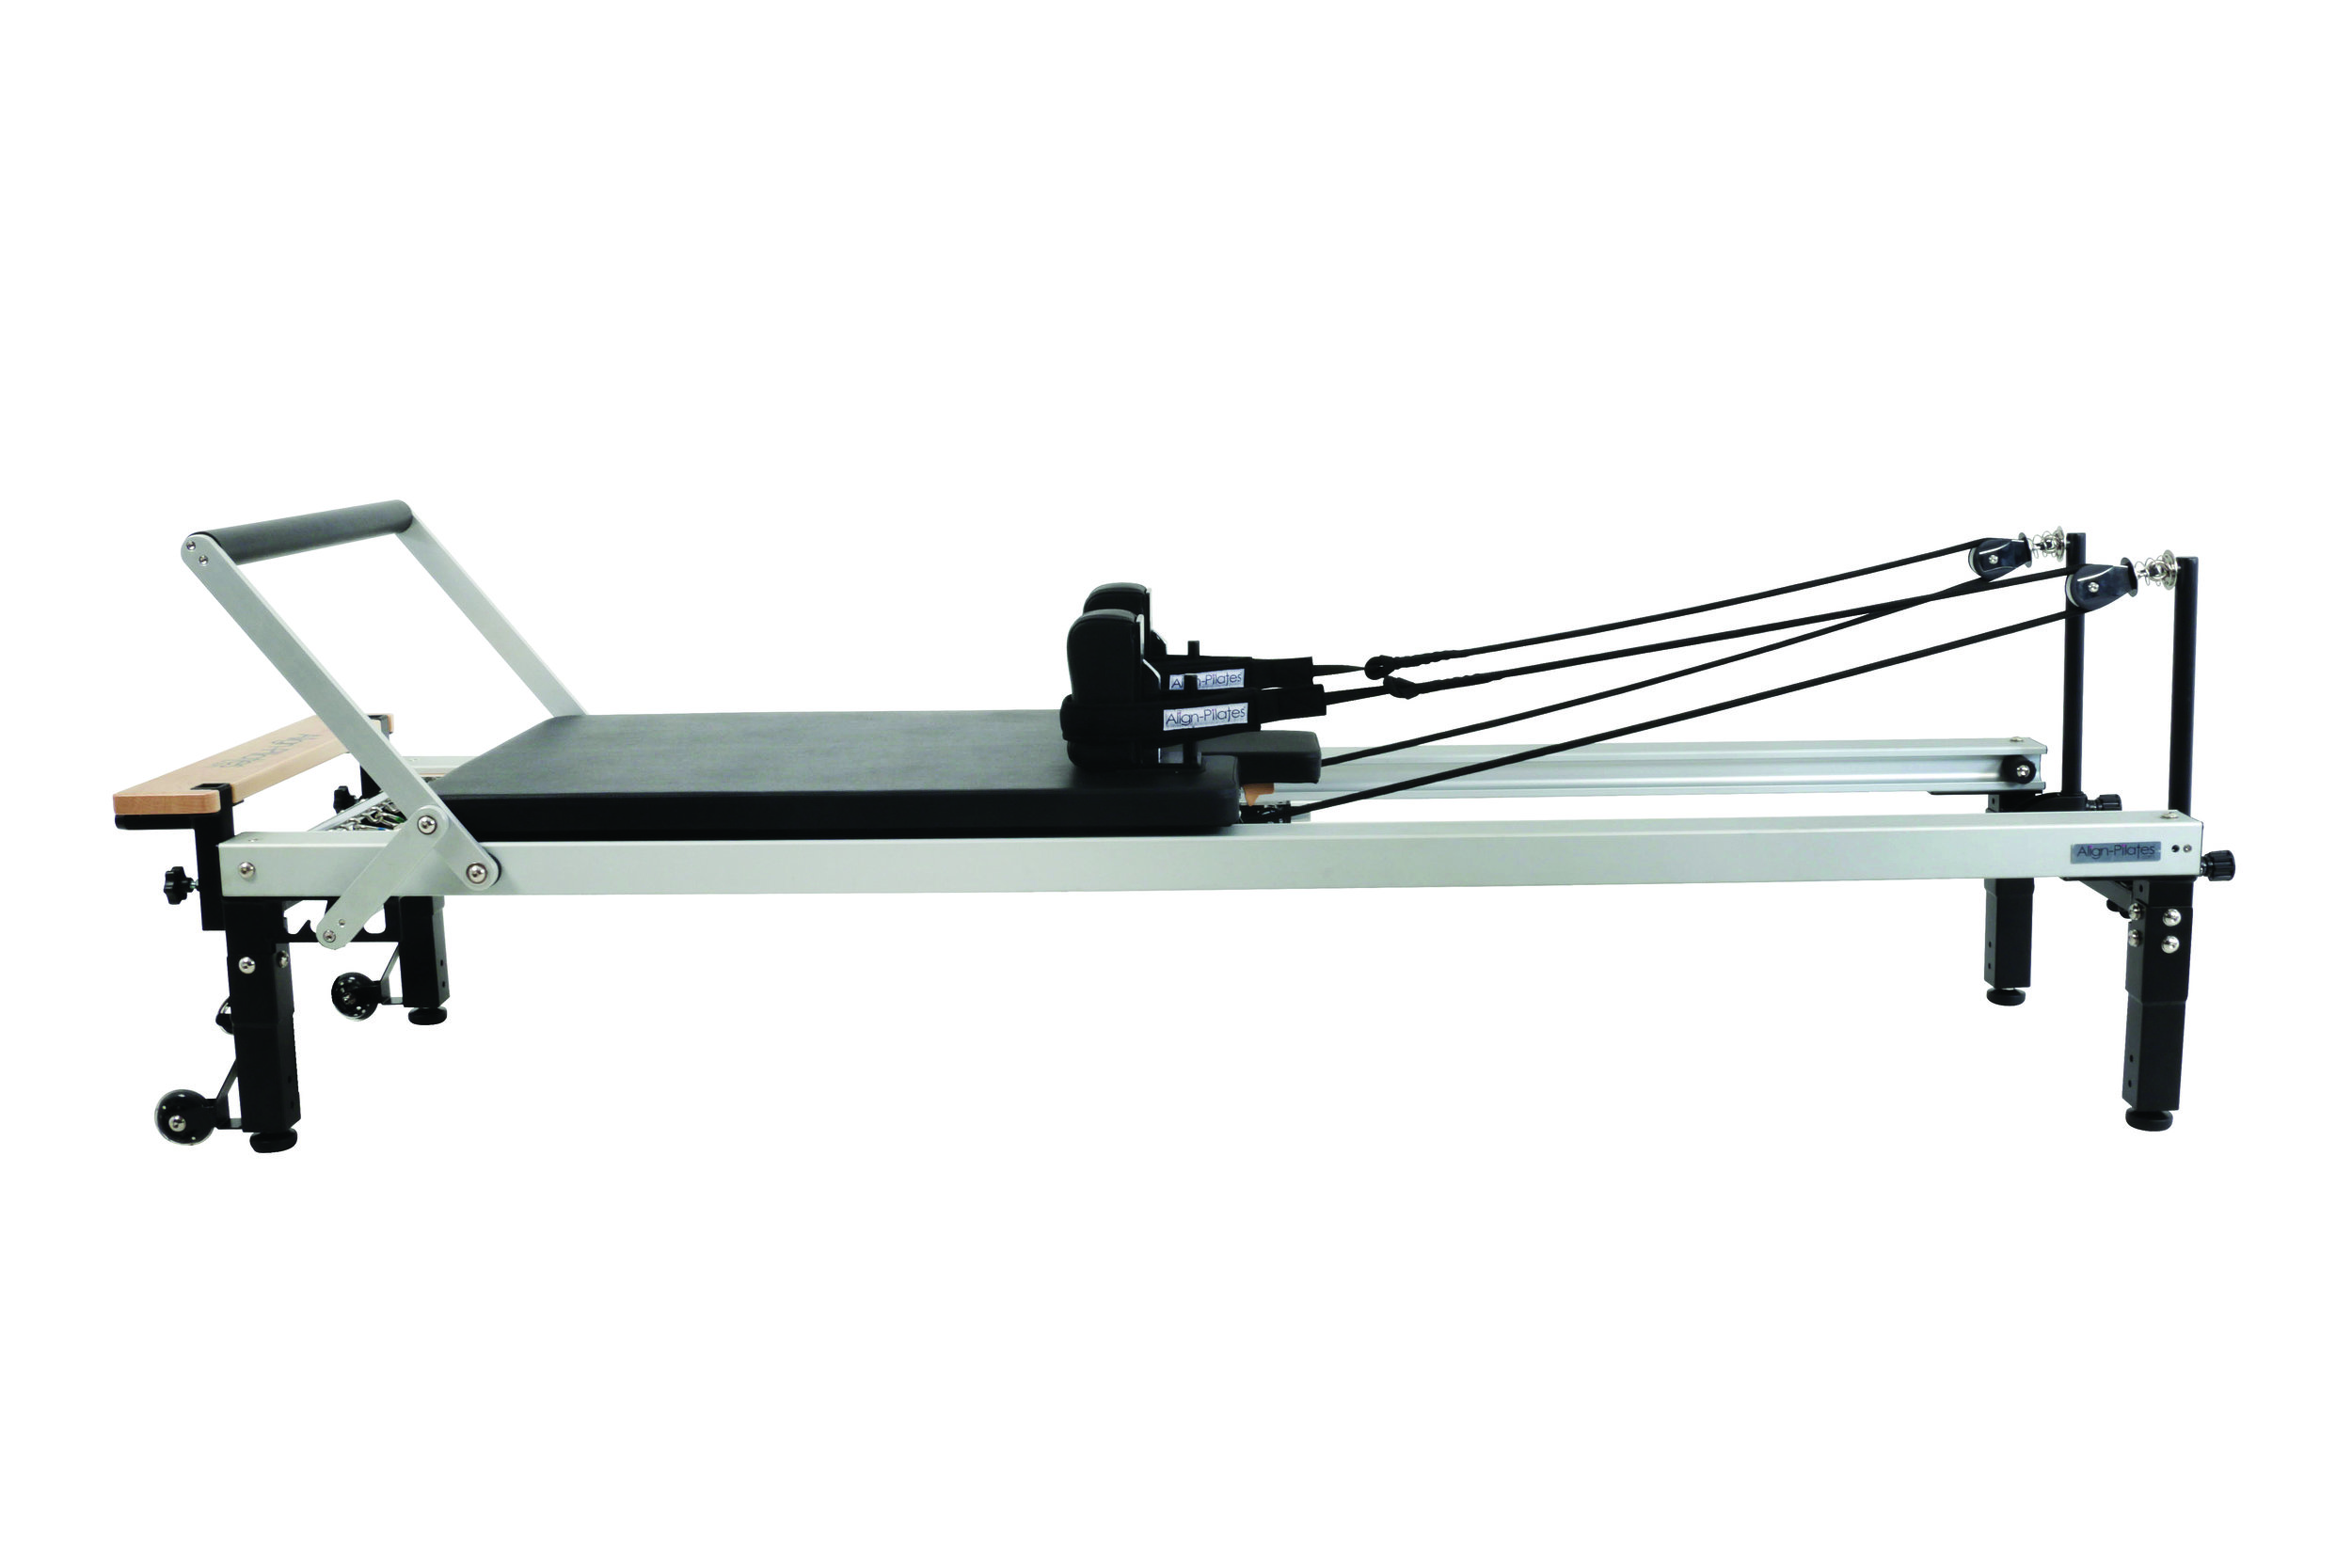 Align C2 pro pilates reformer with extension legs 42cm carriage height